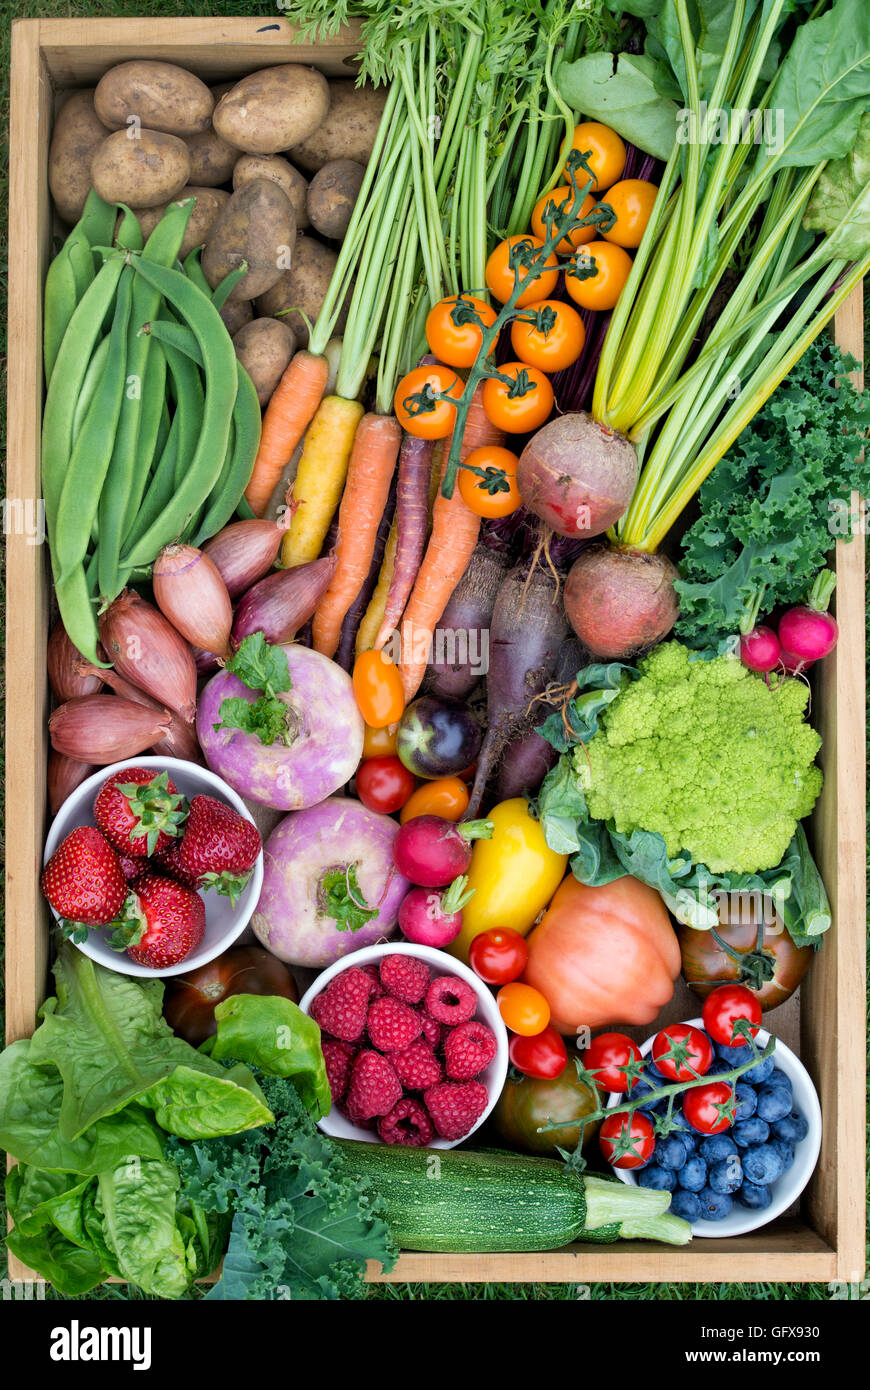 Wooden tray of harvested fruit and vegetables - Stock Image